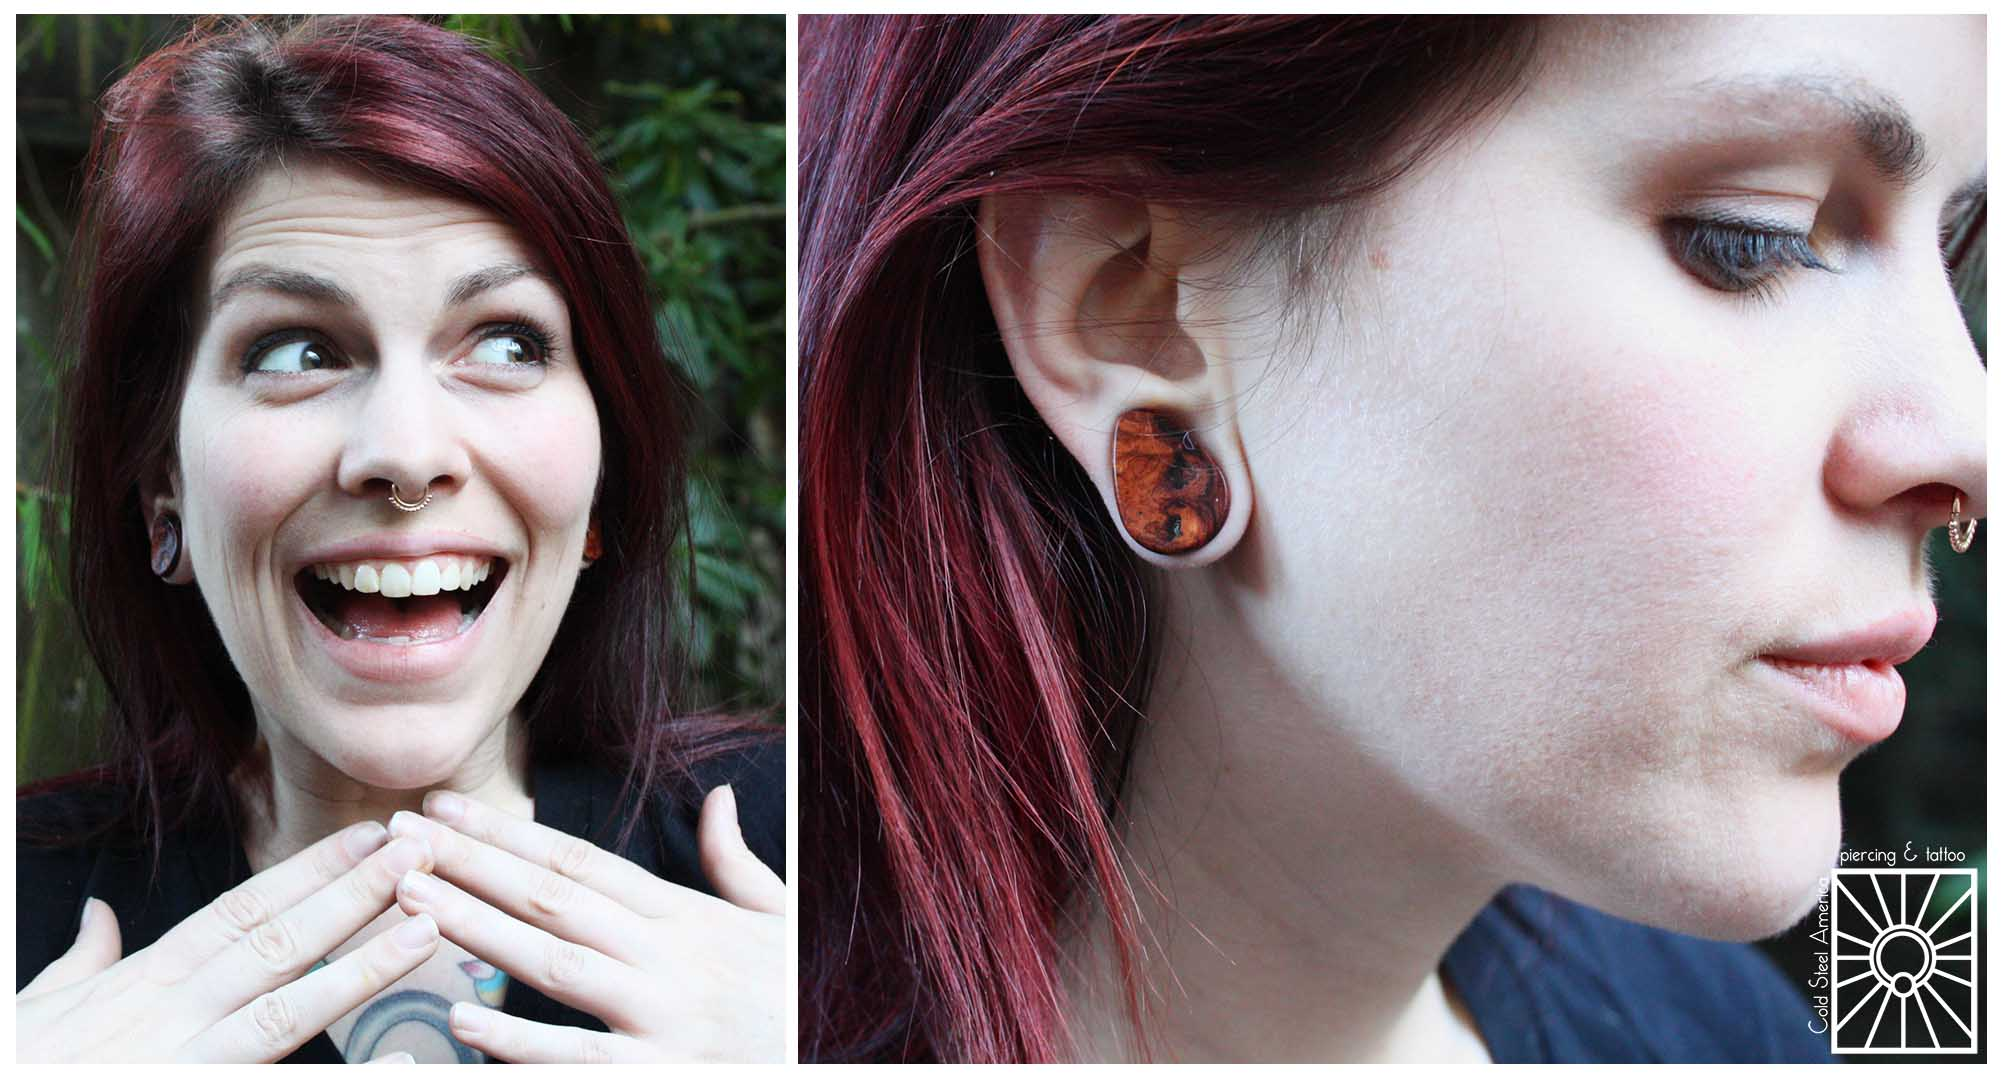 """Our wonderful friend Kate came in to pick up some more fantastic jewelry for her collection! She chose these gorgeous 3/4""""Amboyna Burl teardrop plugs from Omerica Organic, and they look so good on her. Also notice the cute little Rose Gold """"Latchmi"""" ring from Body Vision Los Angeles in her septum!"""